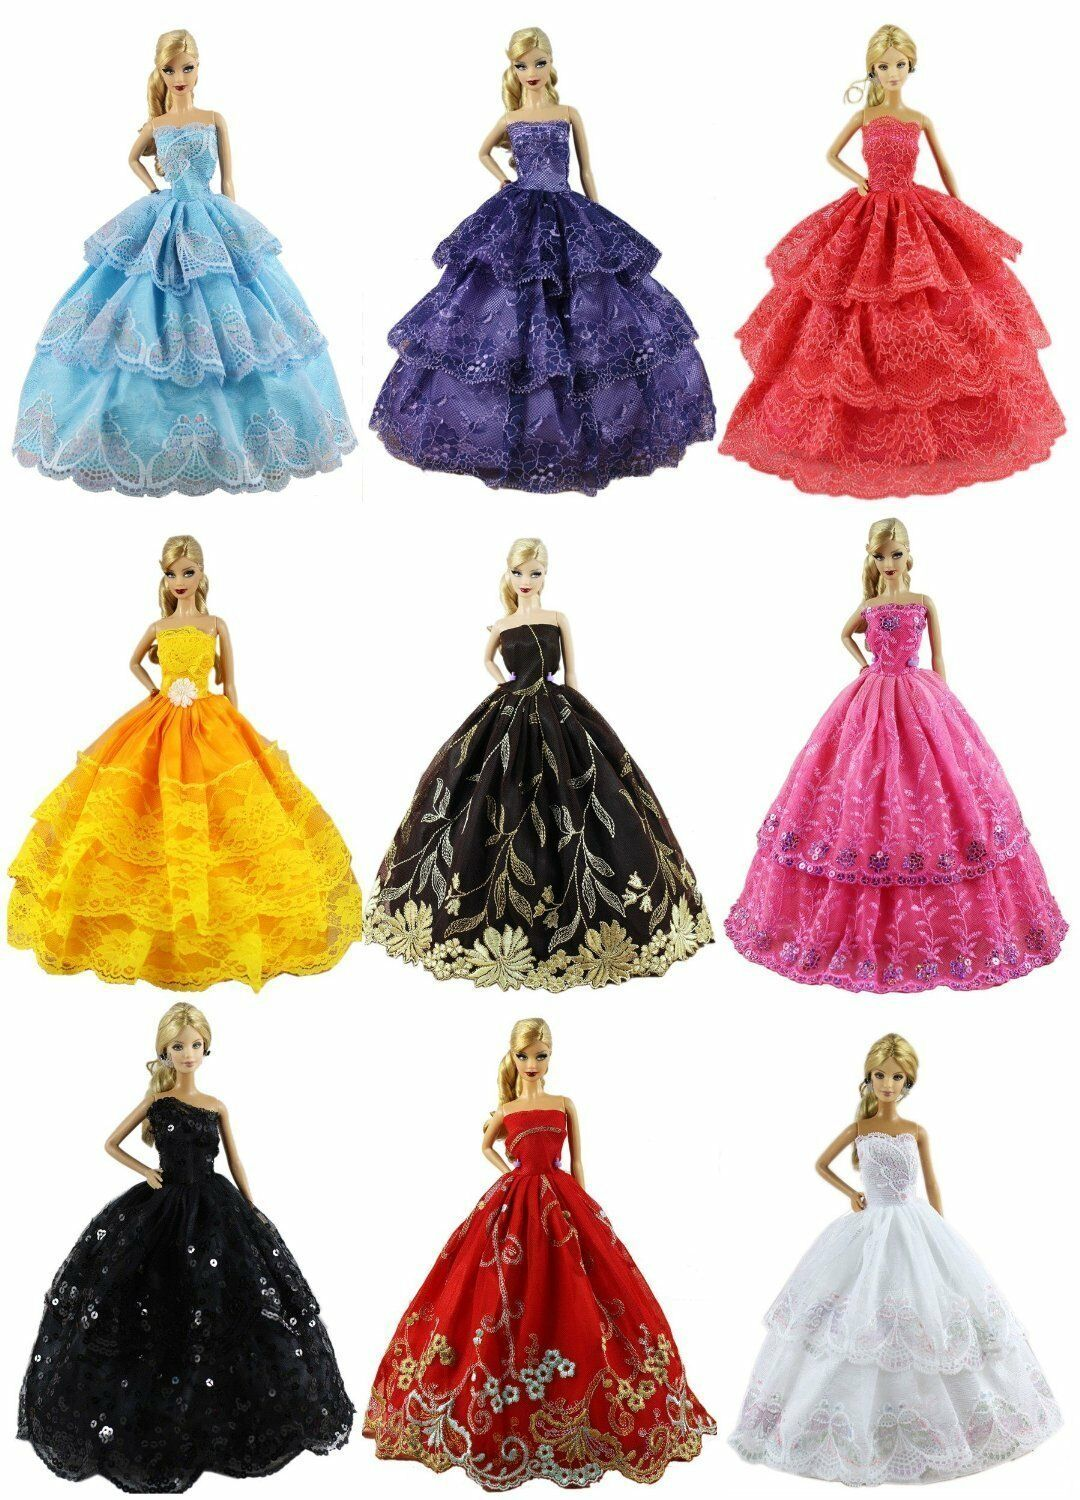 AU 6PCS  Handmade Wedding Dress Party Gown Clothes Outfits For Barbie Doll Kids